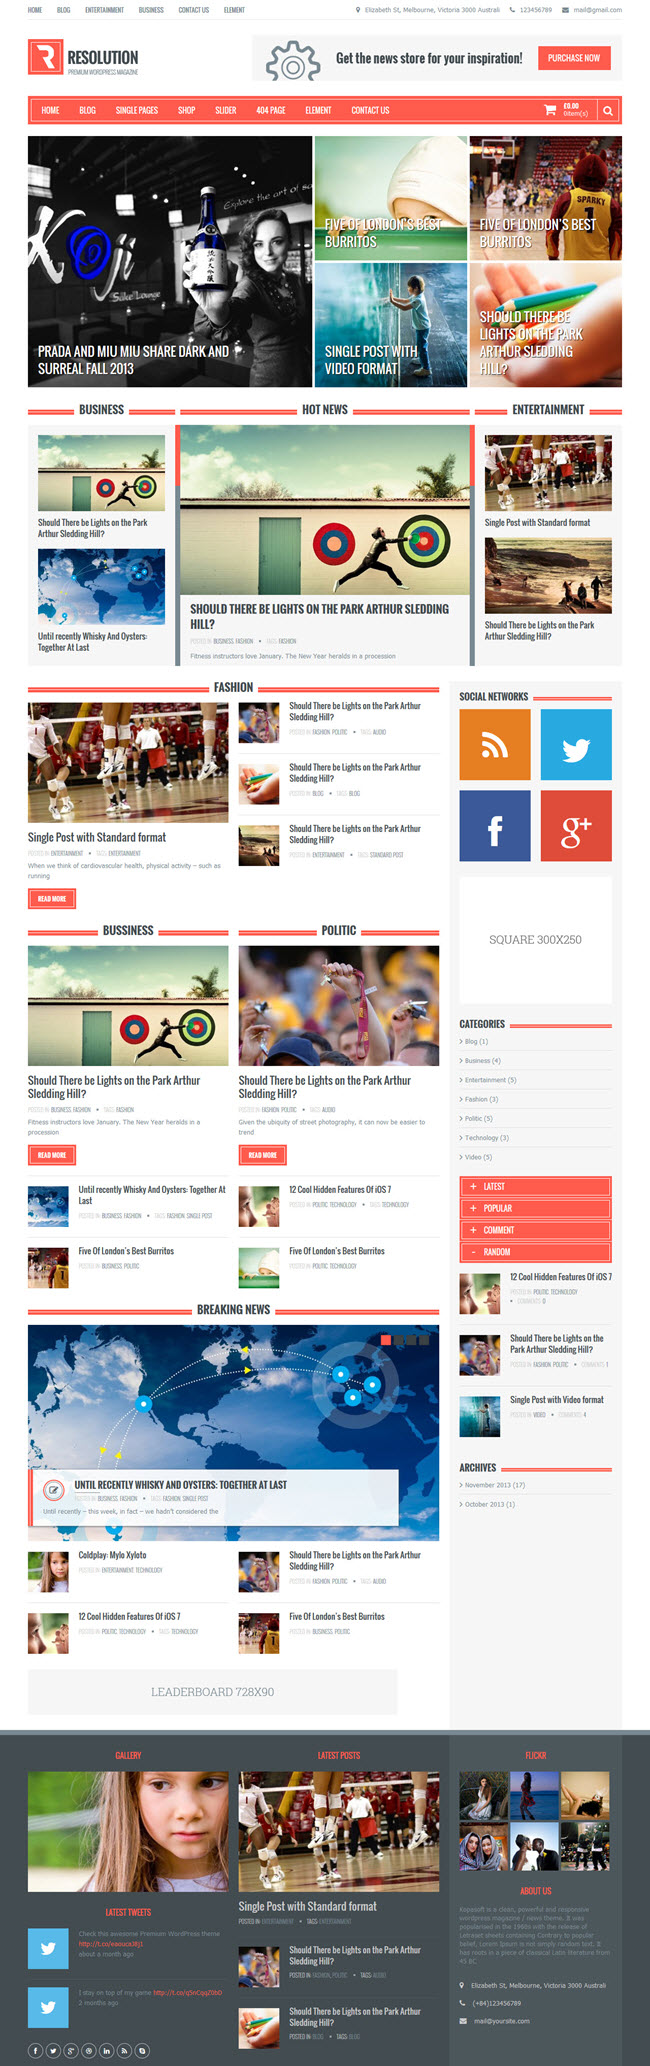 1173 10 Best Free WordPress Themes for April 2014